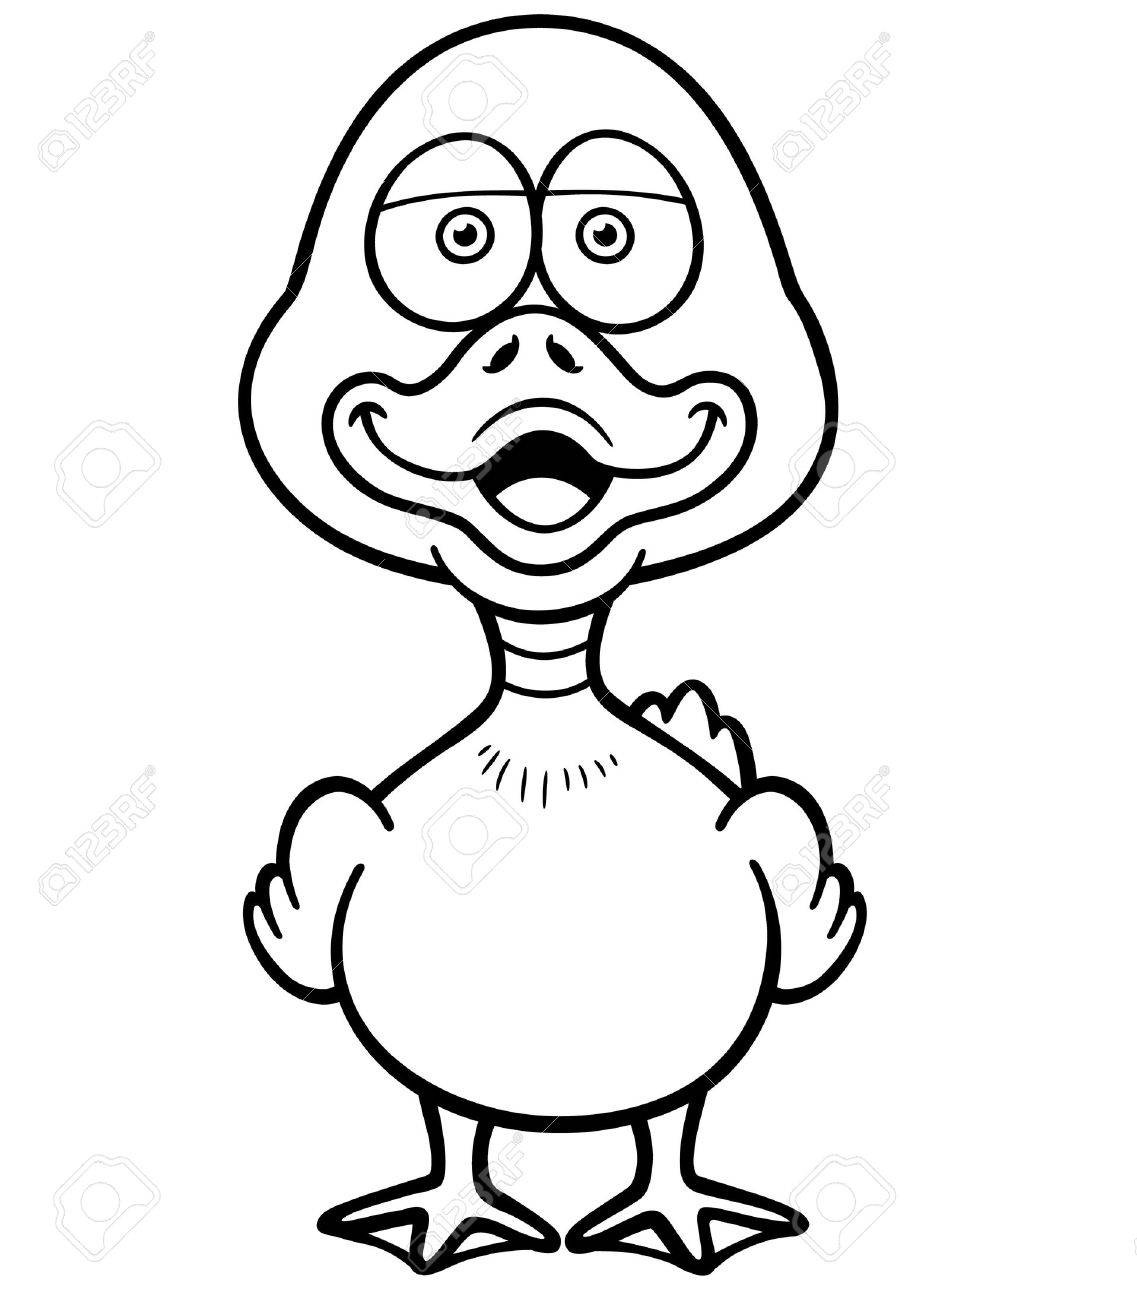 Vector Illustration Of Cartoon Duck - Coloring Book Royalty Free ...